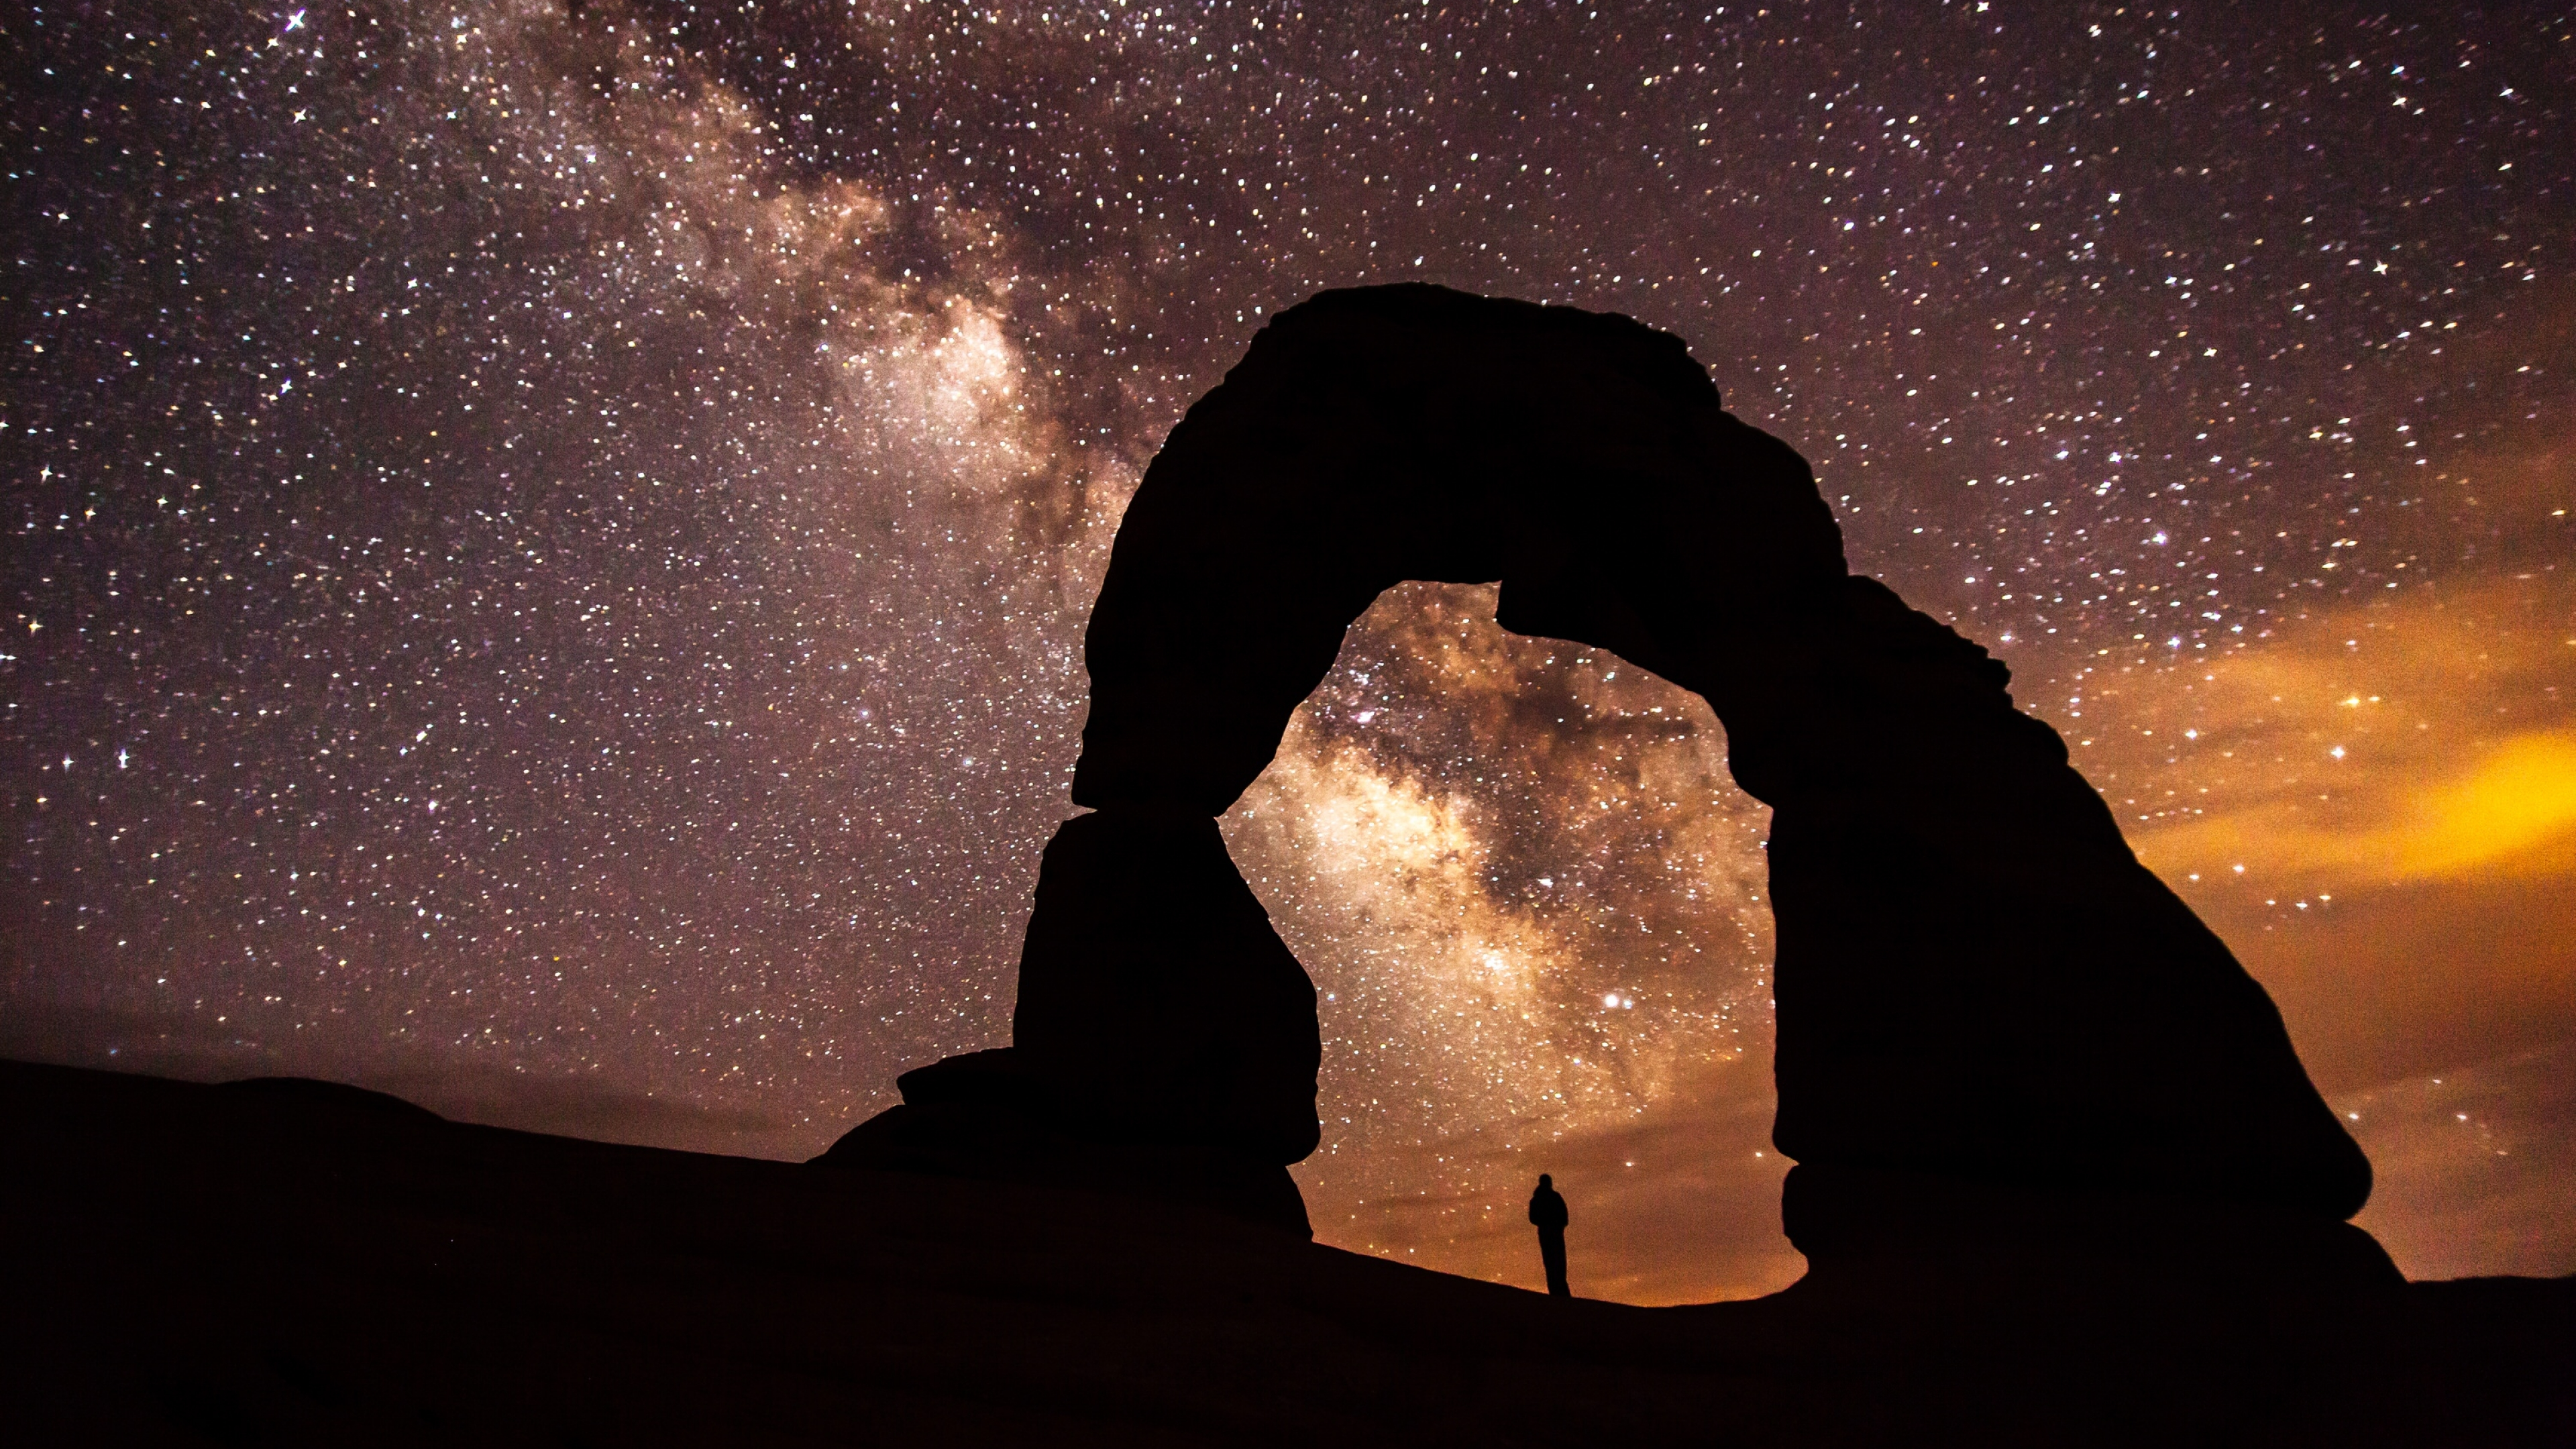 Orange and purple-hued Milky Way with a small person underneath the silhouette of a stone arch at Arches National Park